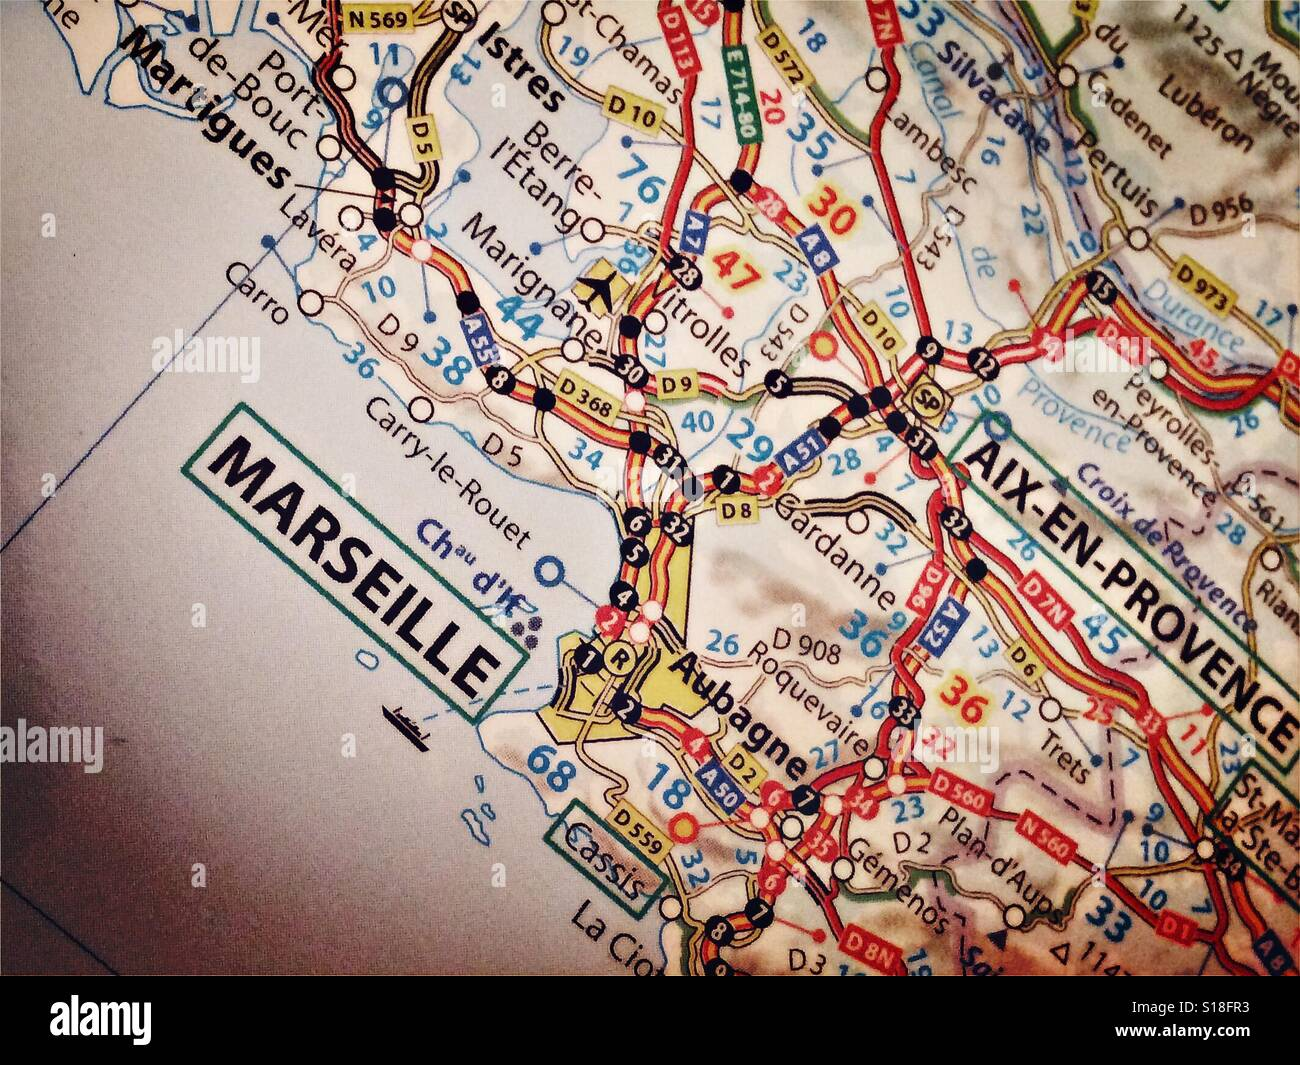 Map Of France Showing Marseille.Map Marseille France Stock Photos Map Marseille France Stock